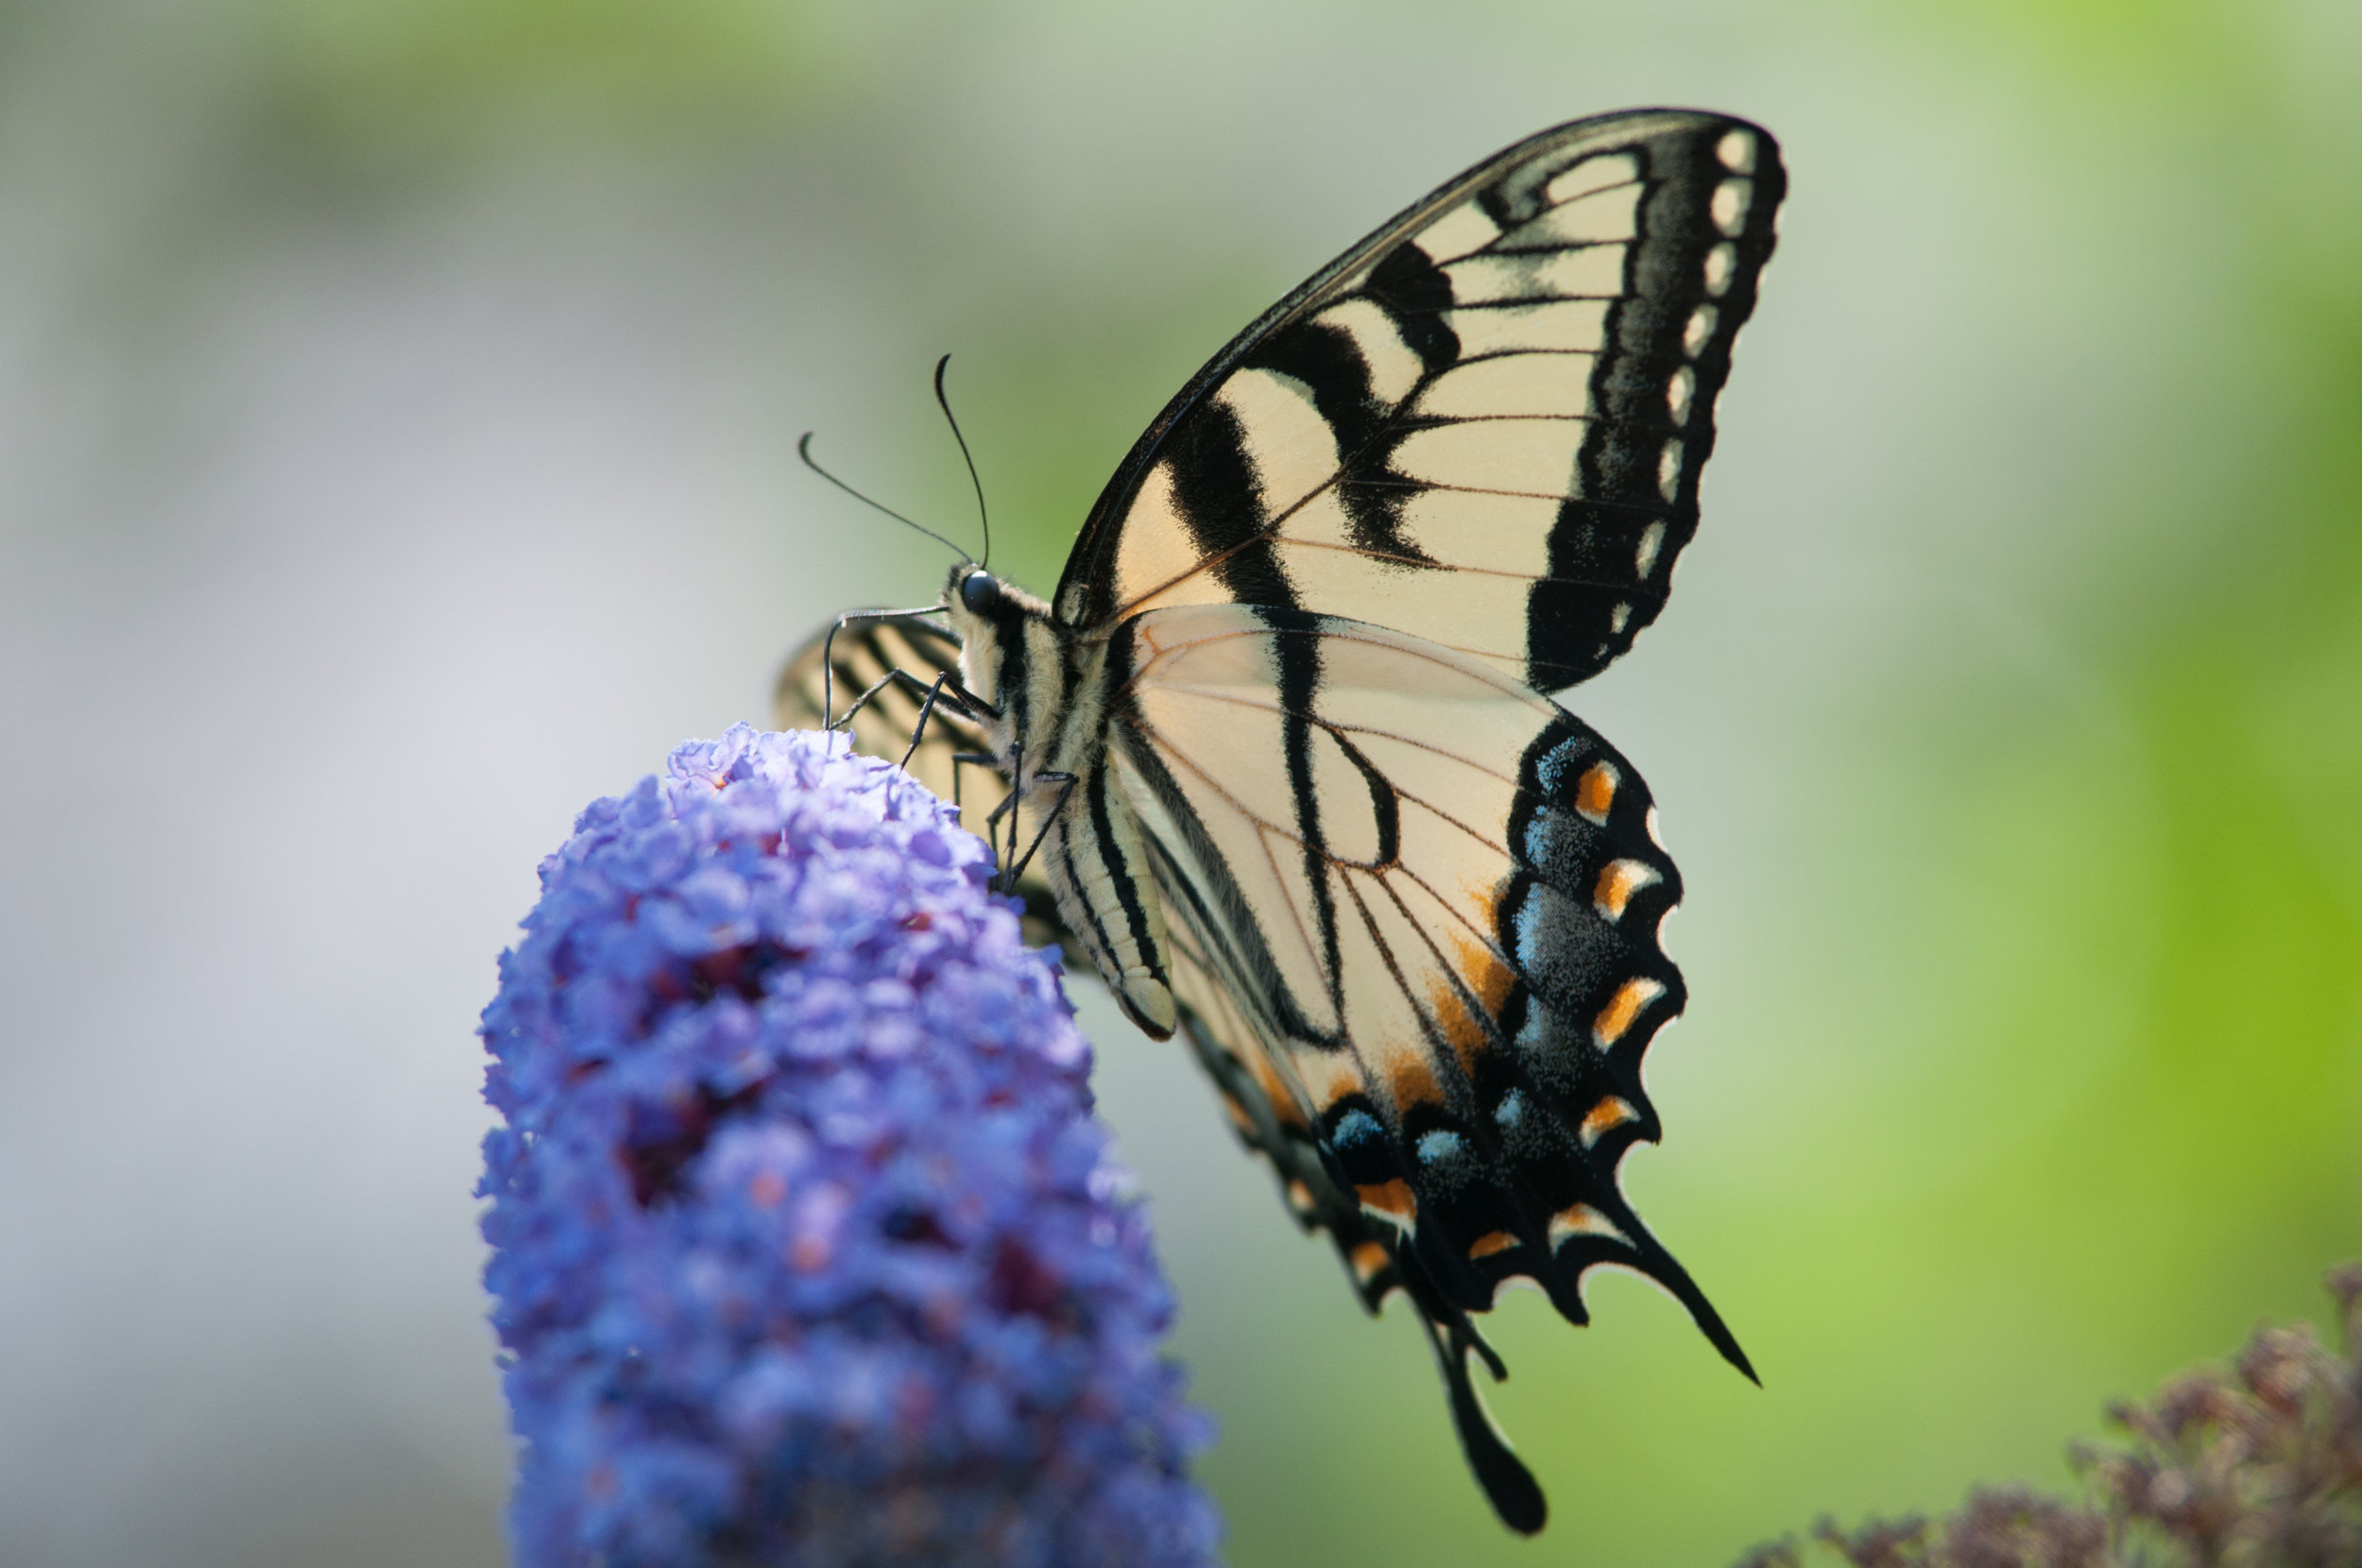 Photo by Amanda Johnson  [Image Description] A butterfly sitting on top of a flower.